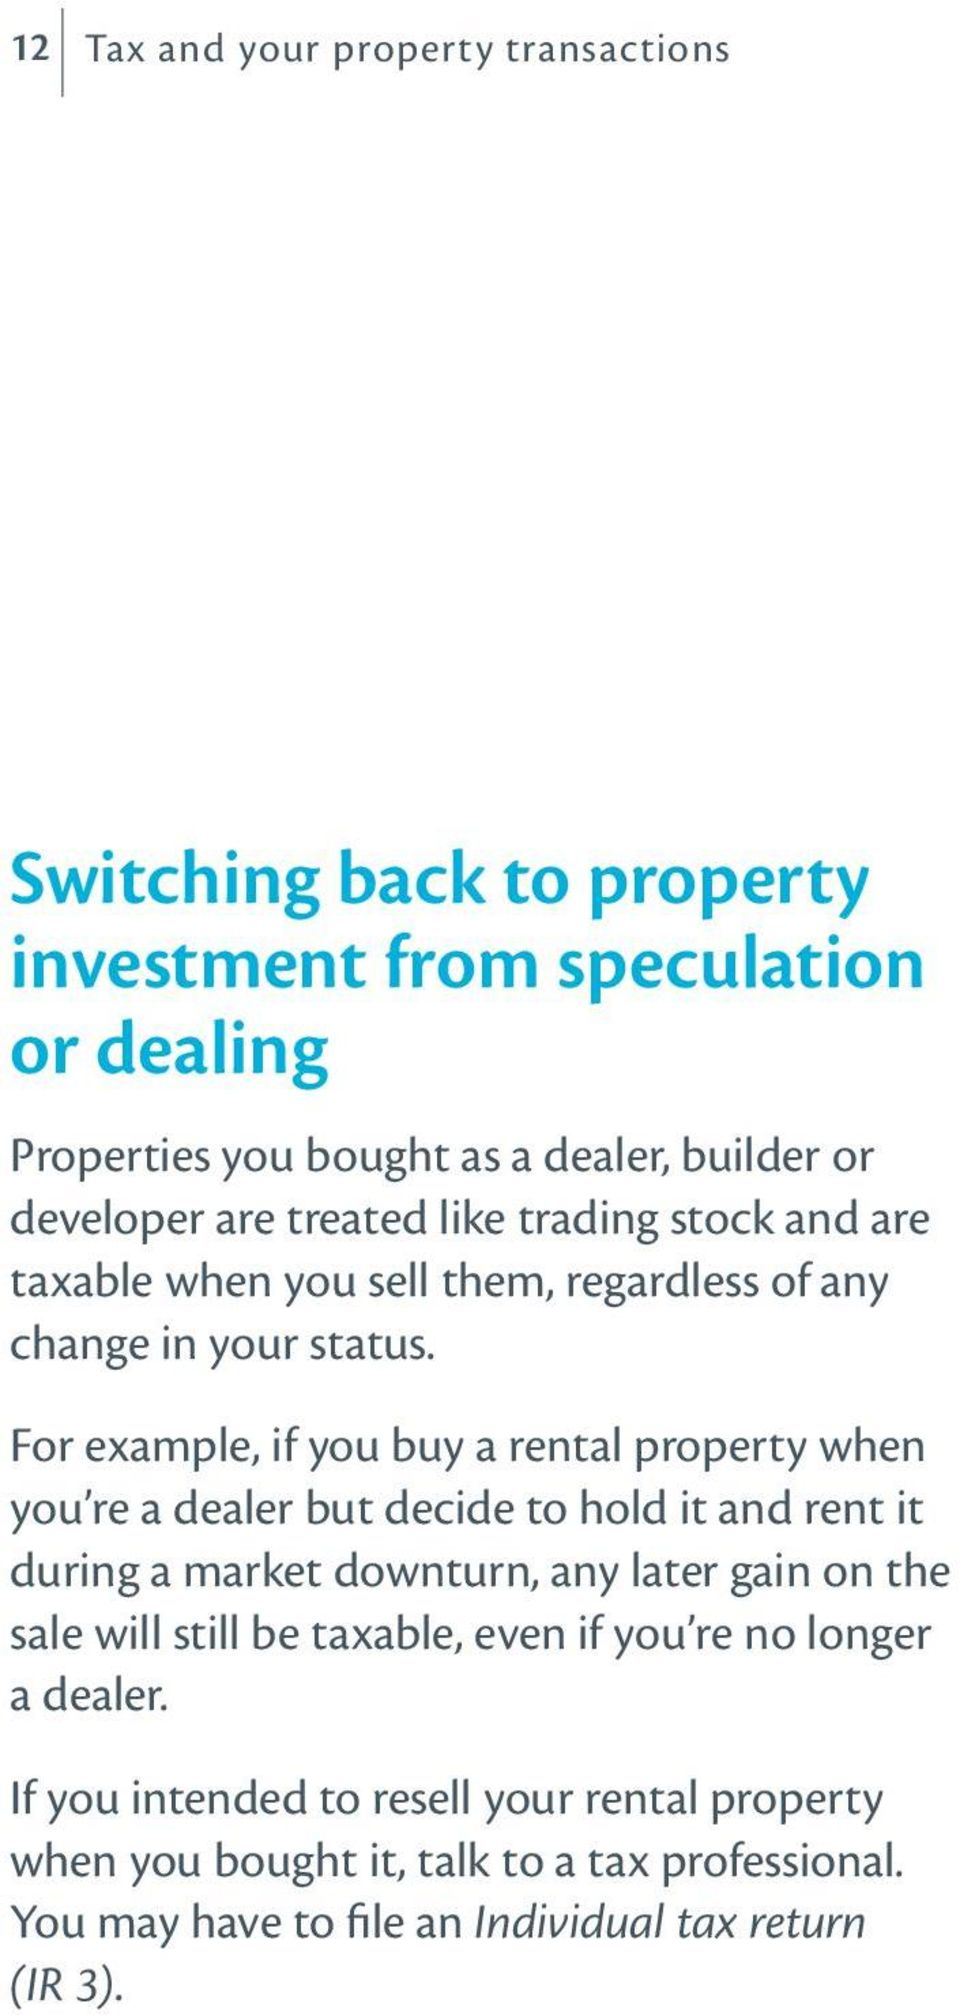 For example, if you buy a rental property when you re a dealer but decide to hold it and rent it during a market downturn, any later gain on the sale will